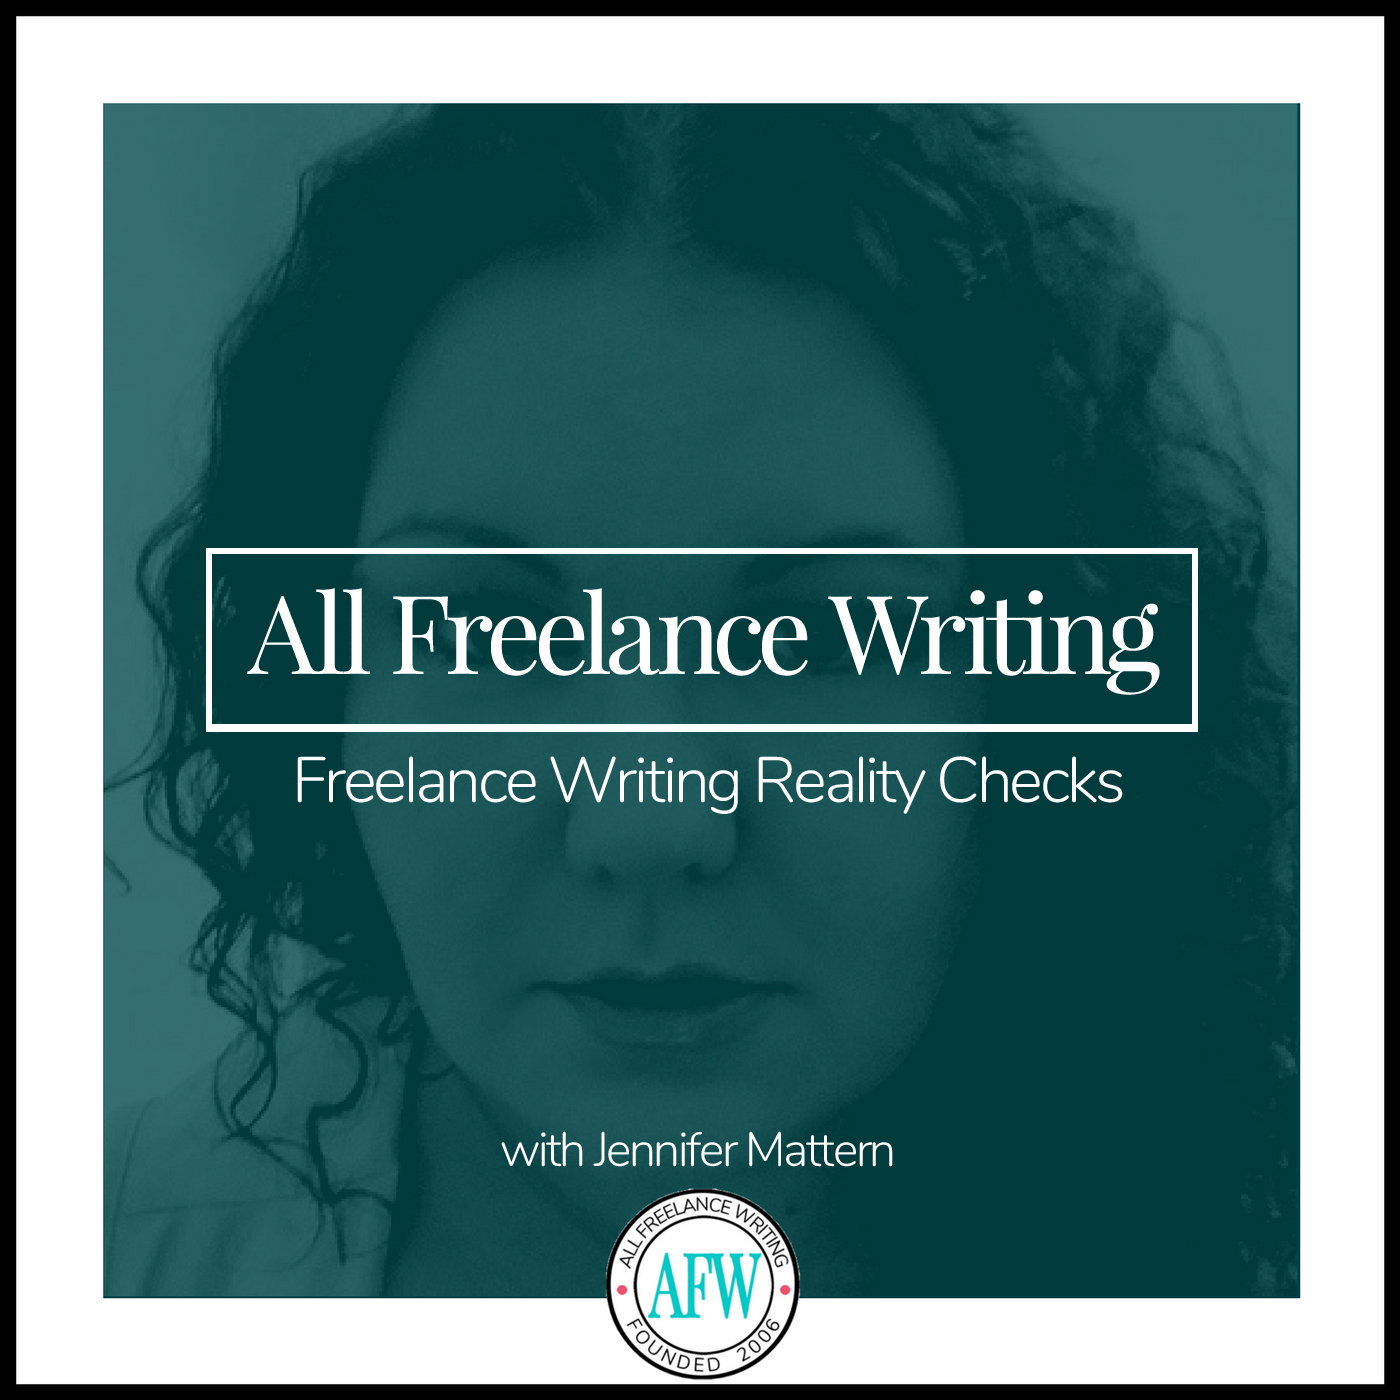 All Freelance Writing Podcast with Jennifer Mattern